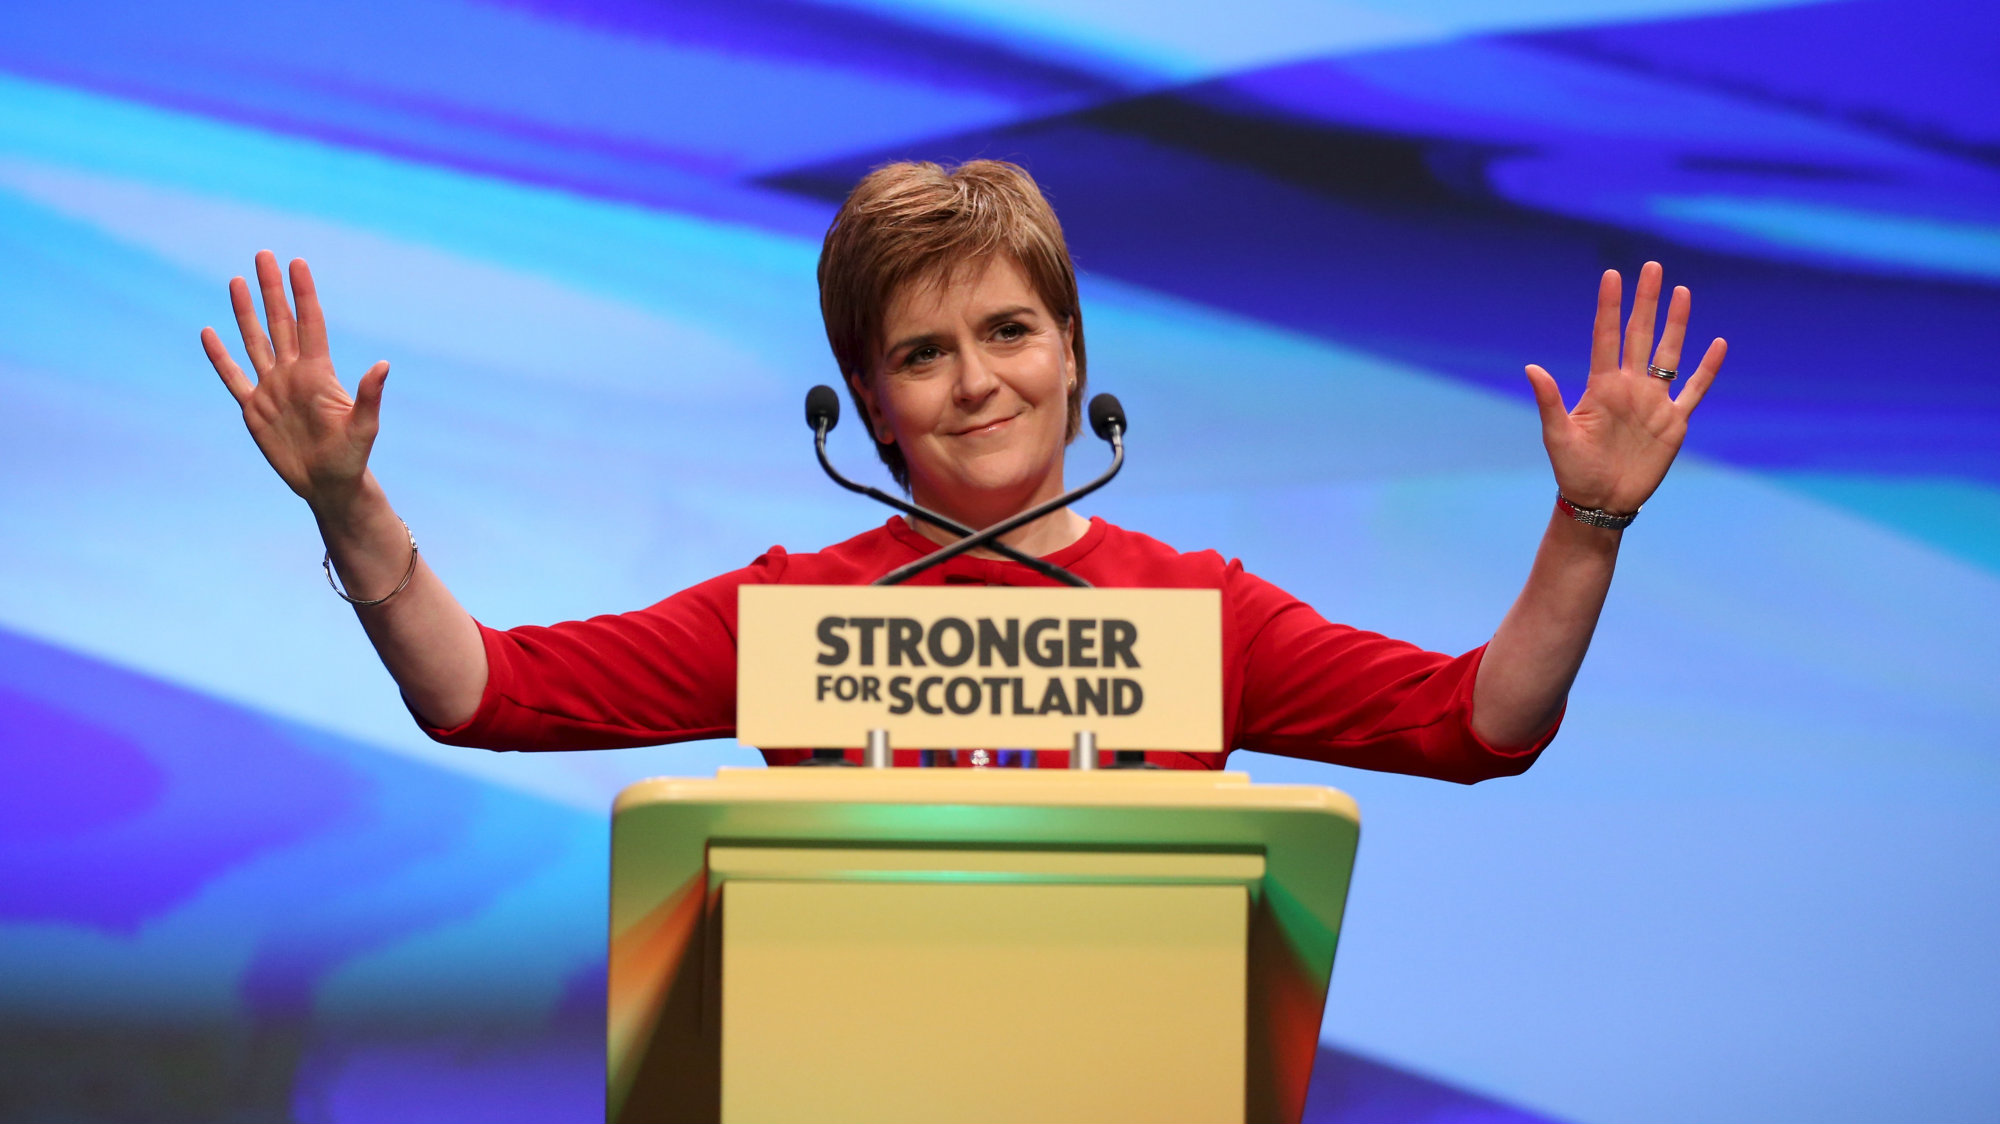 Scotland's First Minister and leader of the Scottish National Party (SNP) Nicola Sturgeon acknowledges delegates at the party's annual conference in Aberdeen, Scotland, October 17, 2015.